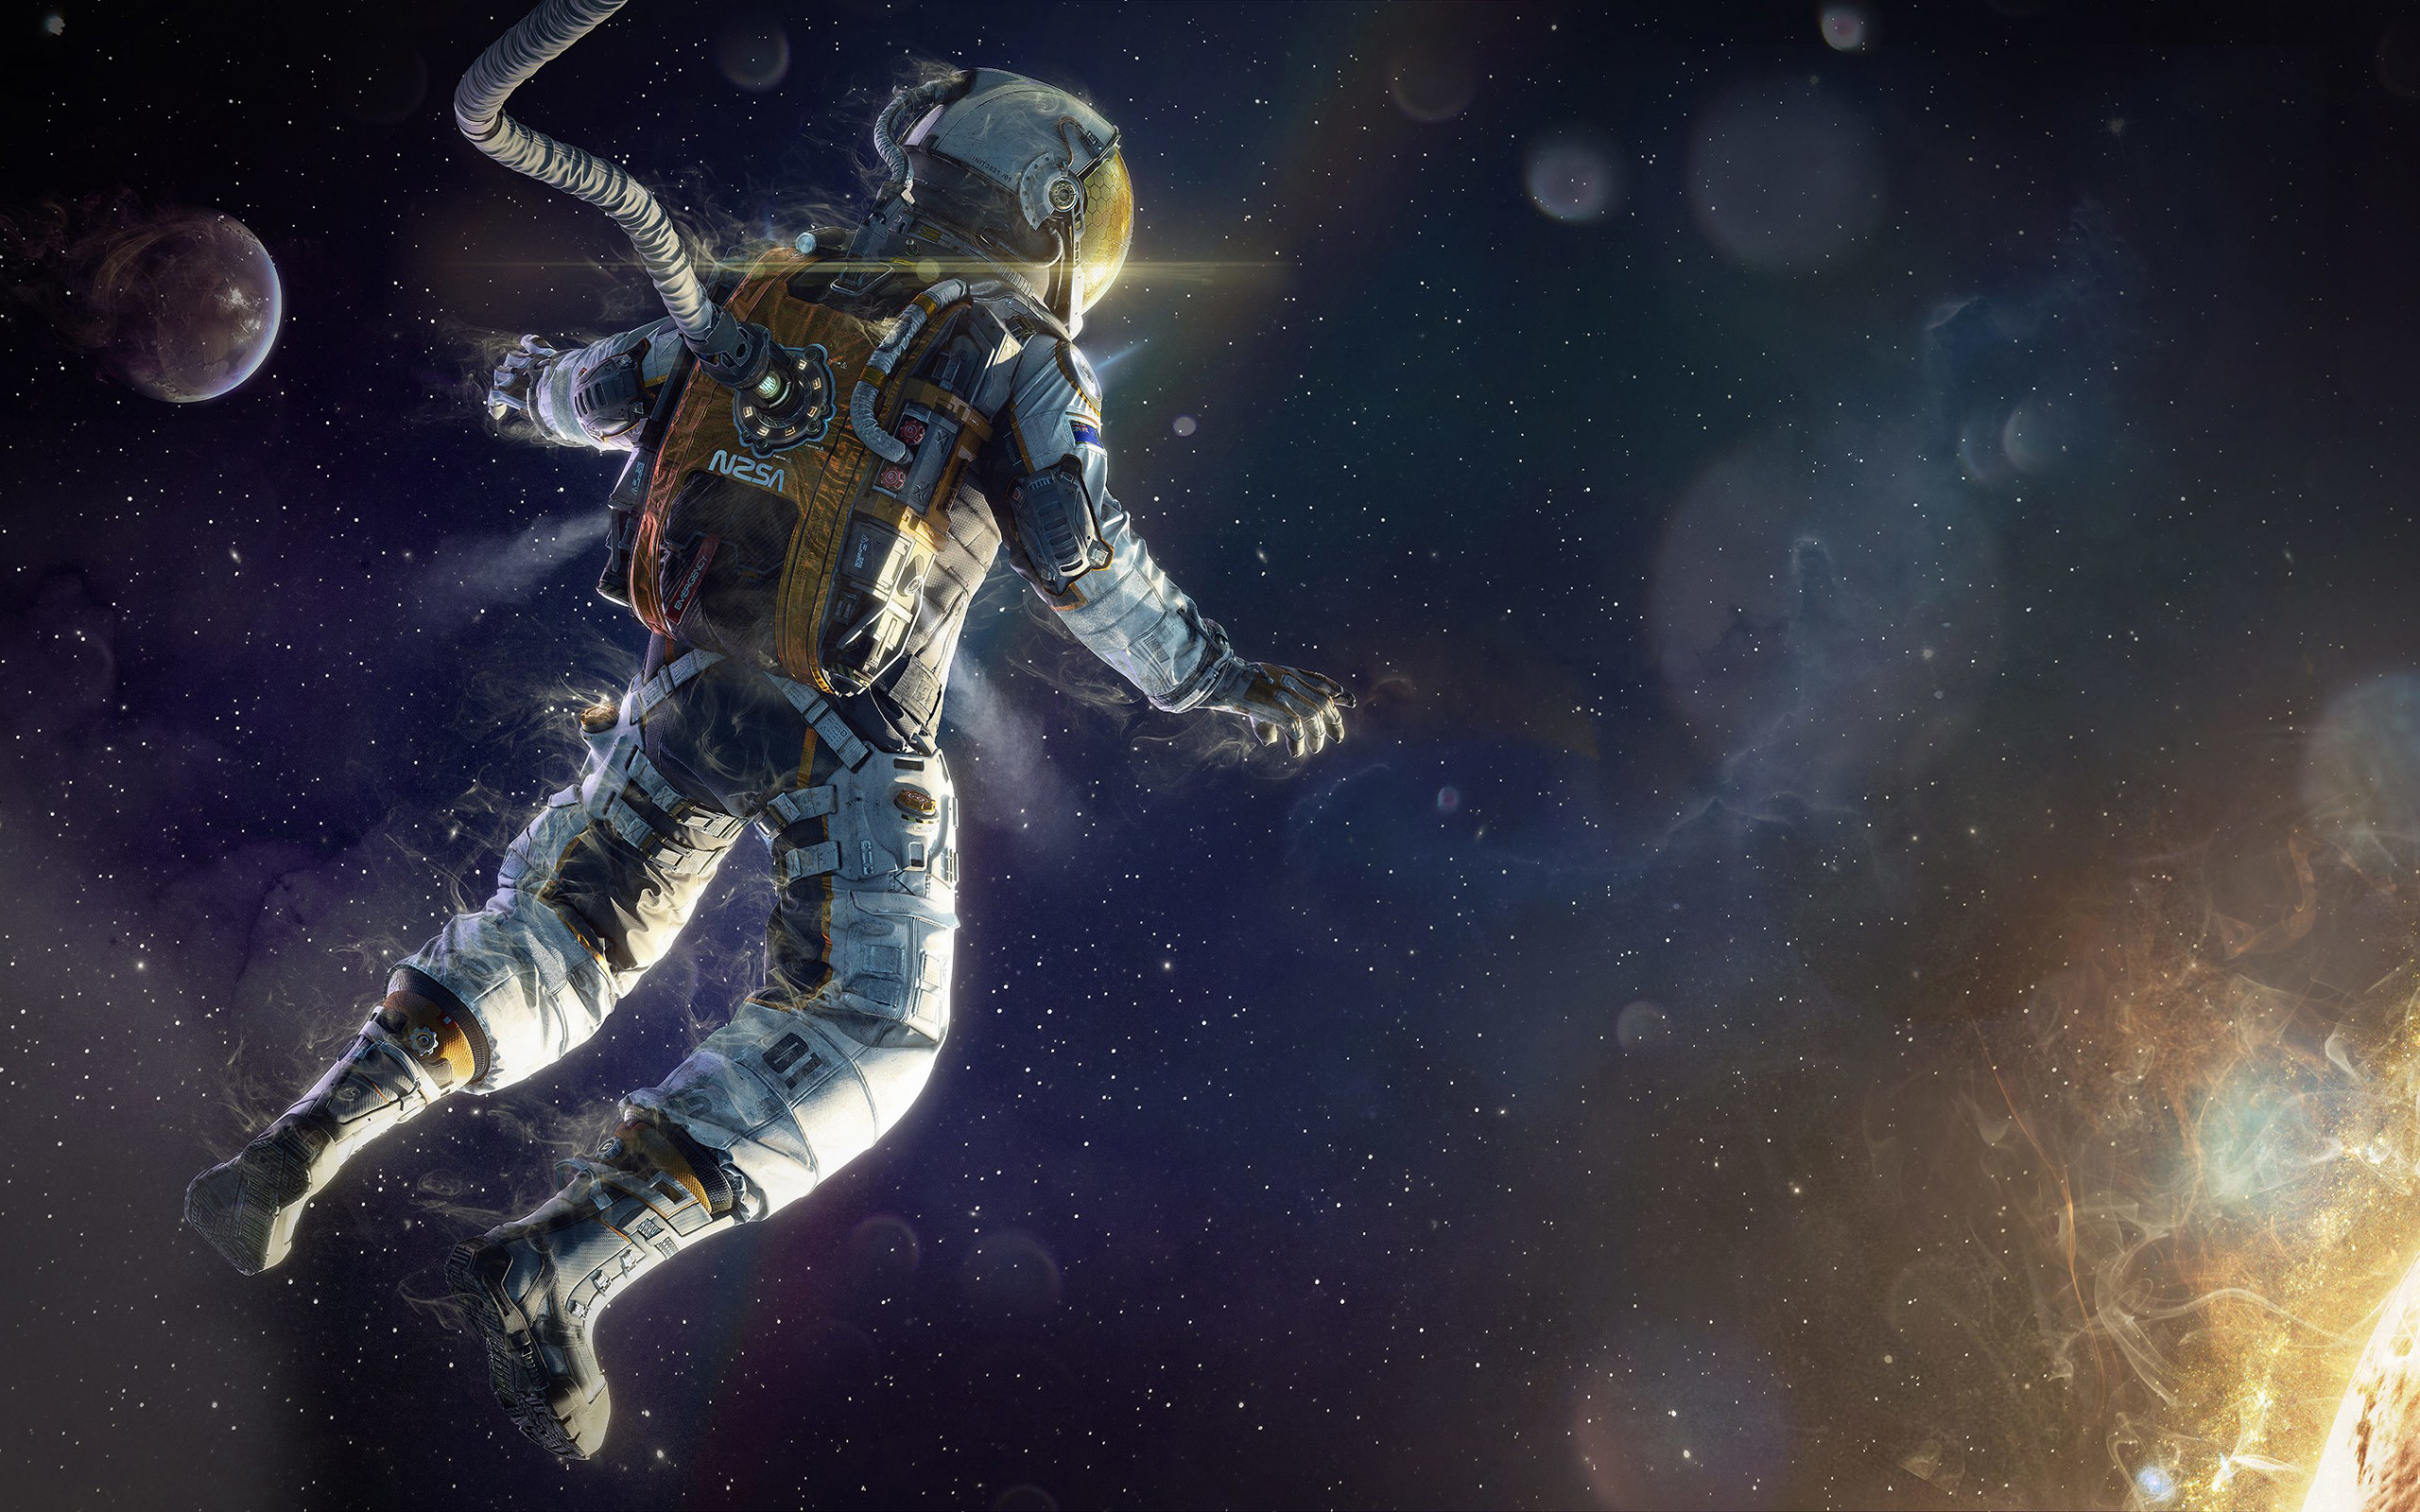 Inspirational Quotes Wallpapers For Pc Hd Hd Astronaut Wallpapers Pixelstalk Net